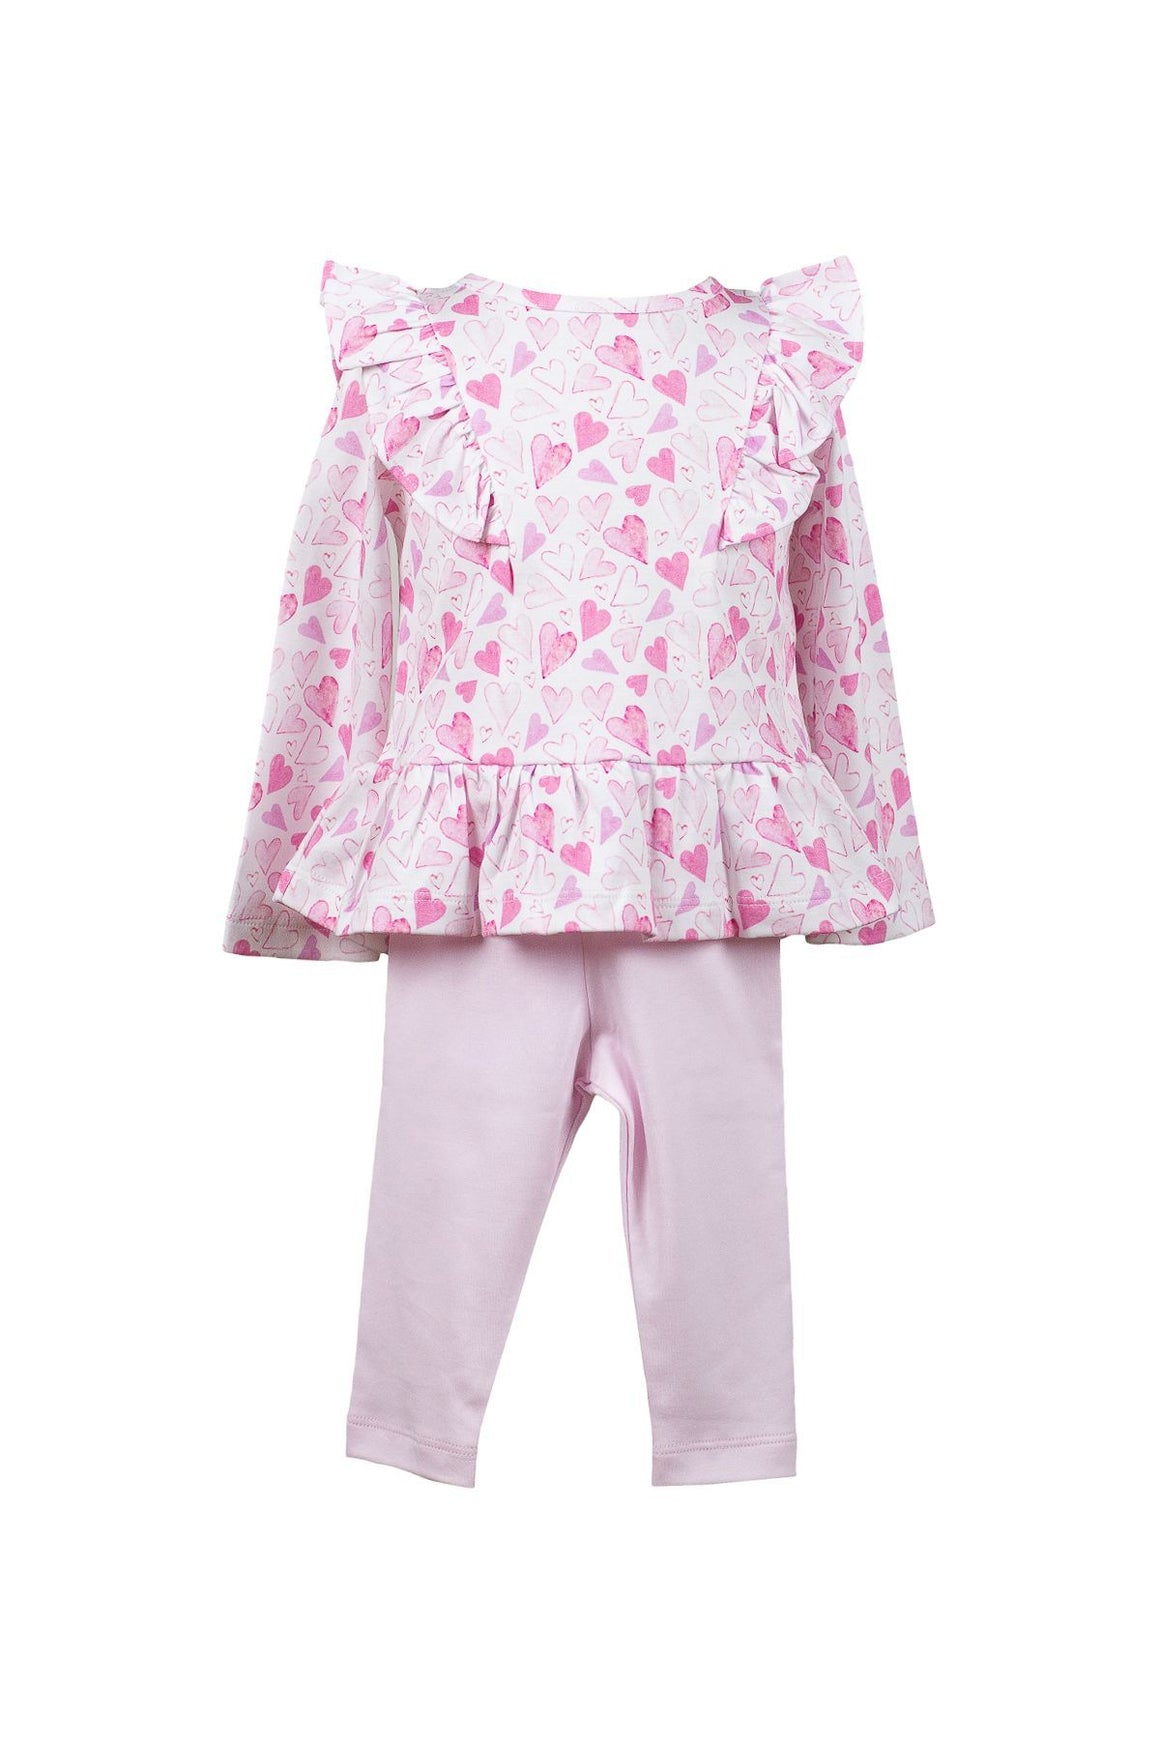 The Proper Peony Apparel The Proper Peony Parkside Collection Hadley Heart Tunic Set